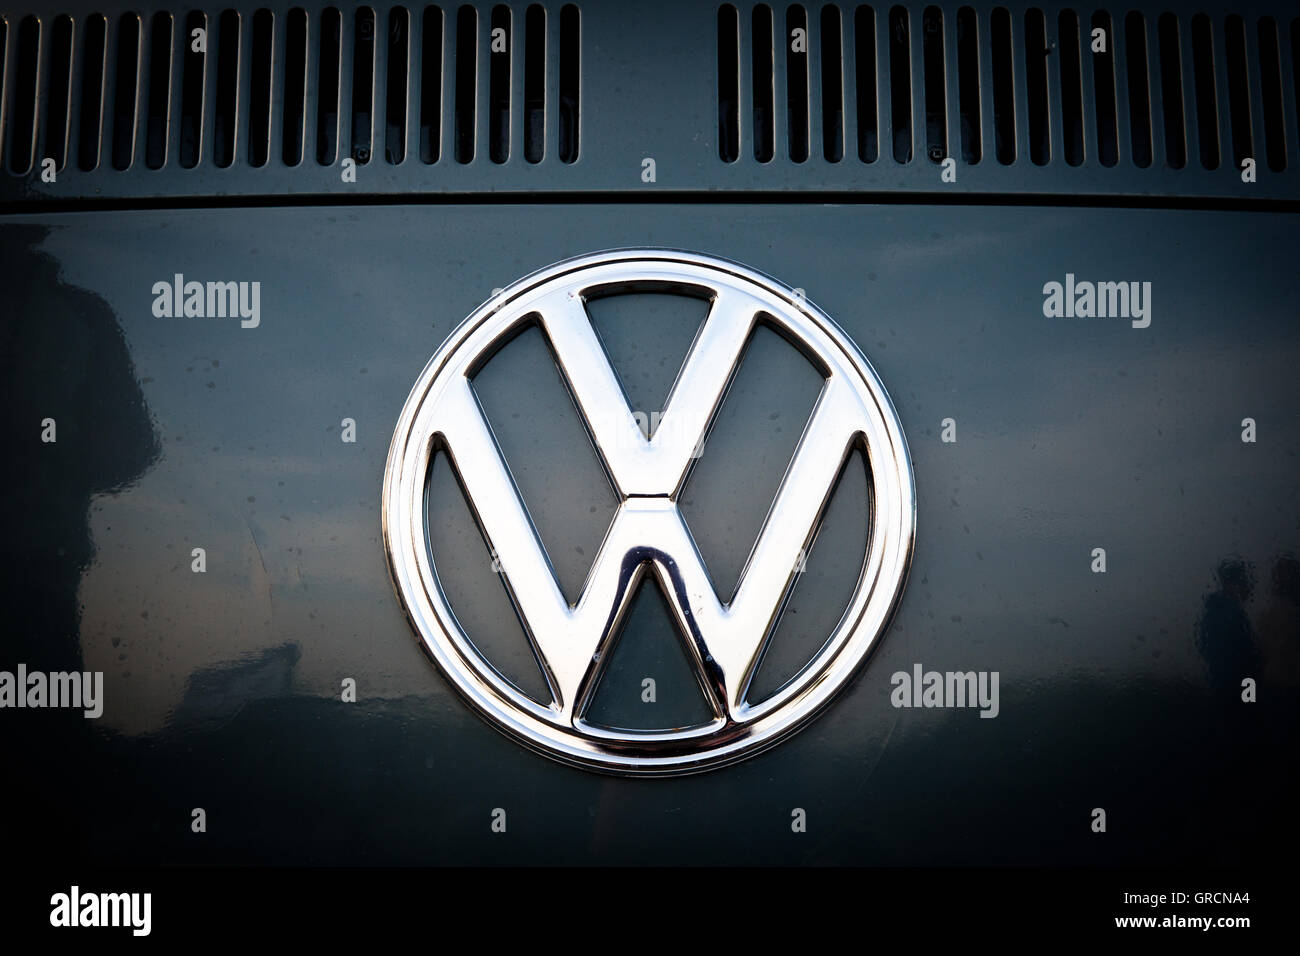 Volkswagen Brand Logo On Vw Bus T2 - Stock Image